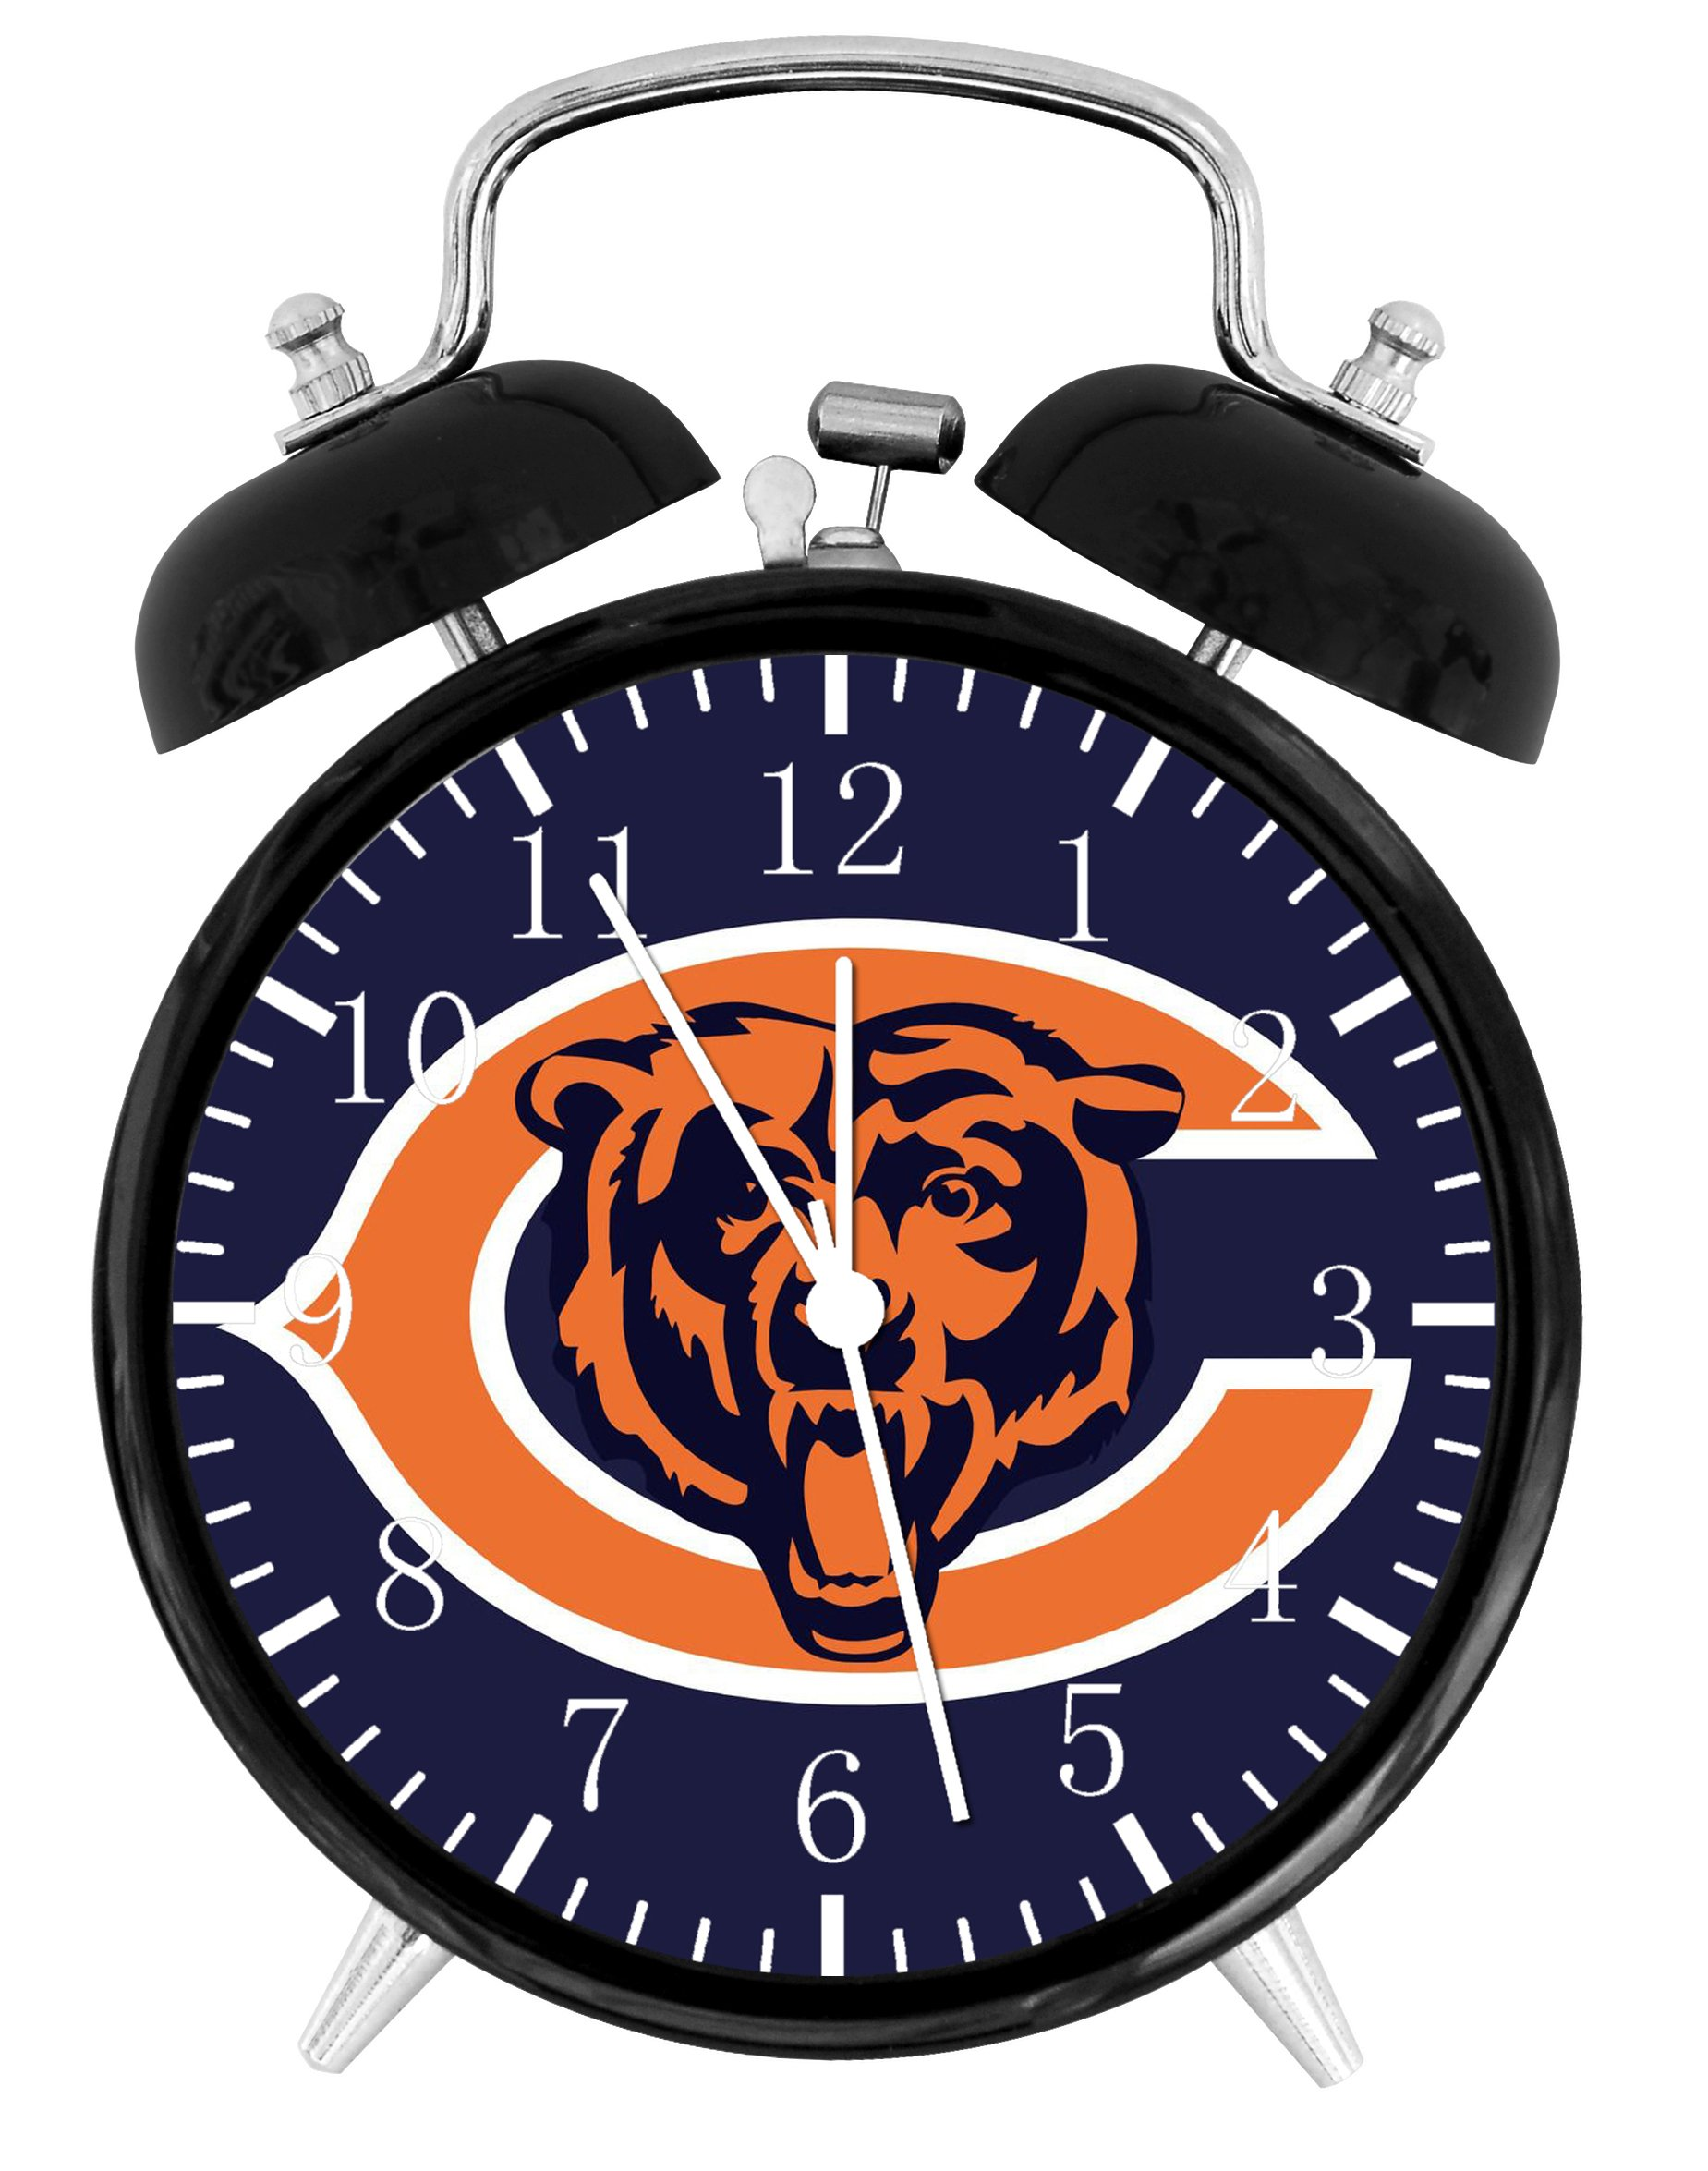 Chicago Bears Alarm Desk Clock 3.75'' Home Office Decor F17 Nice For Gifts